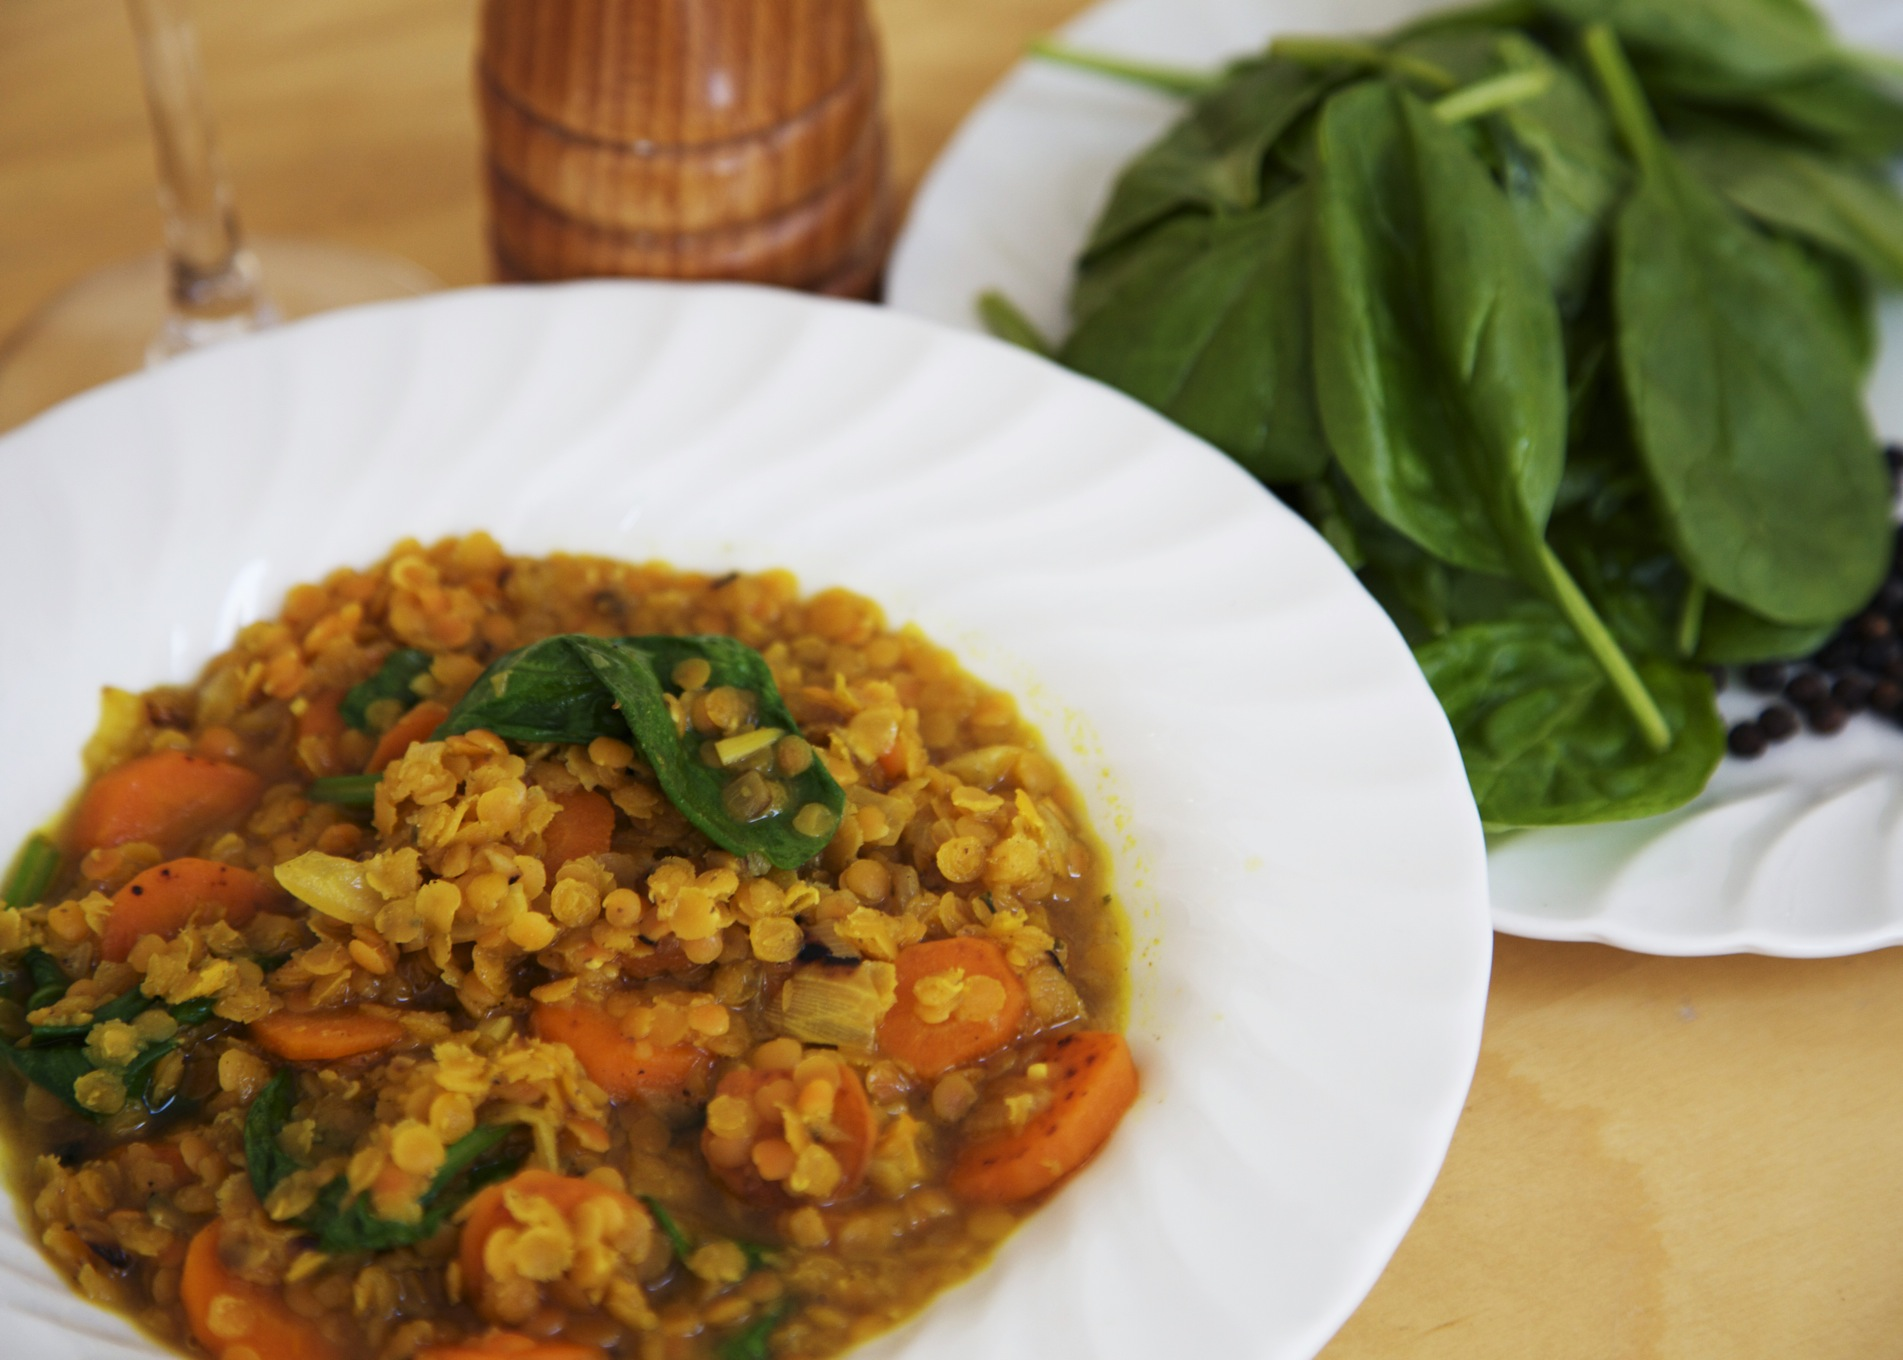 spiced root and lentil casserole